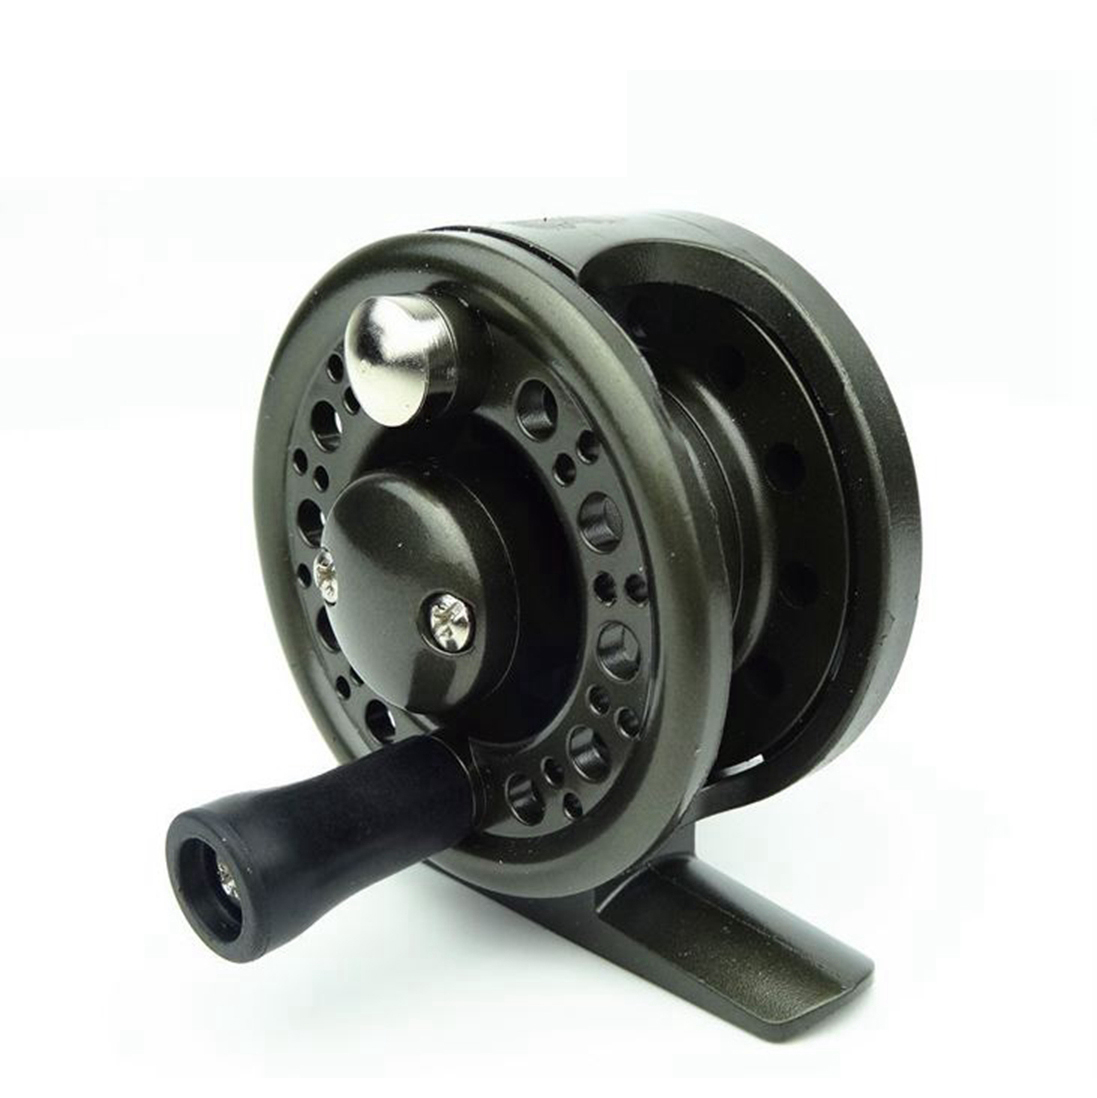 Fly ice fishing reel saltwater reels freshwater tackle for Fly fishing reels ebay